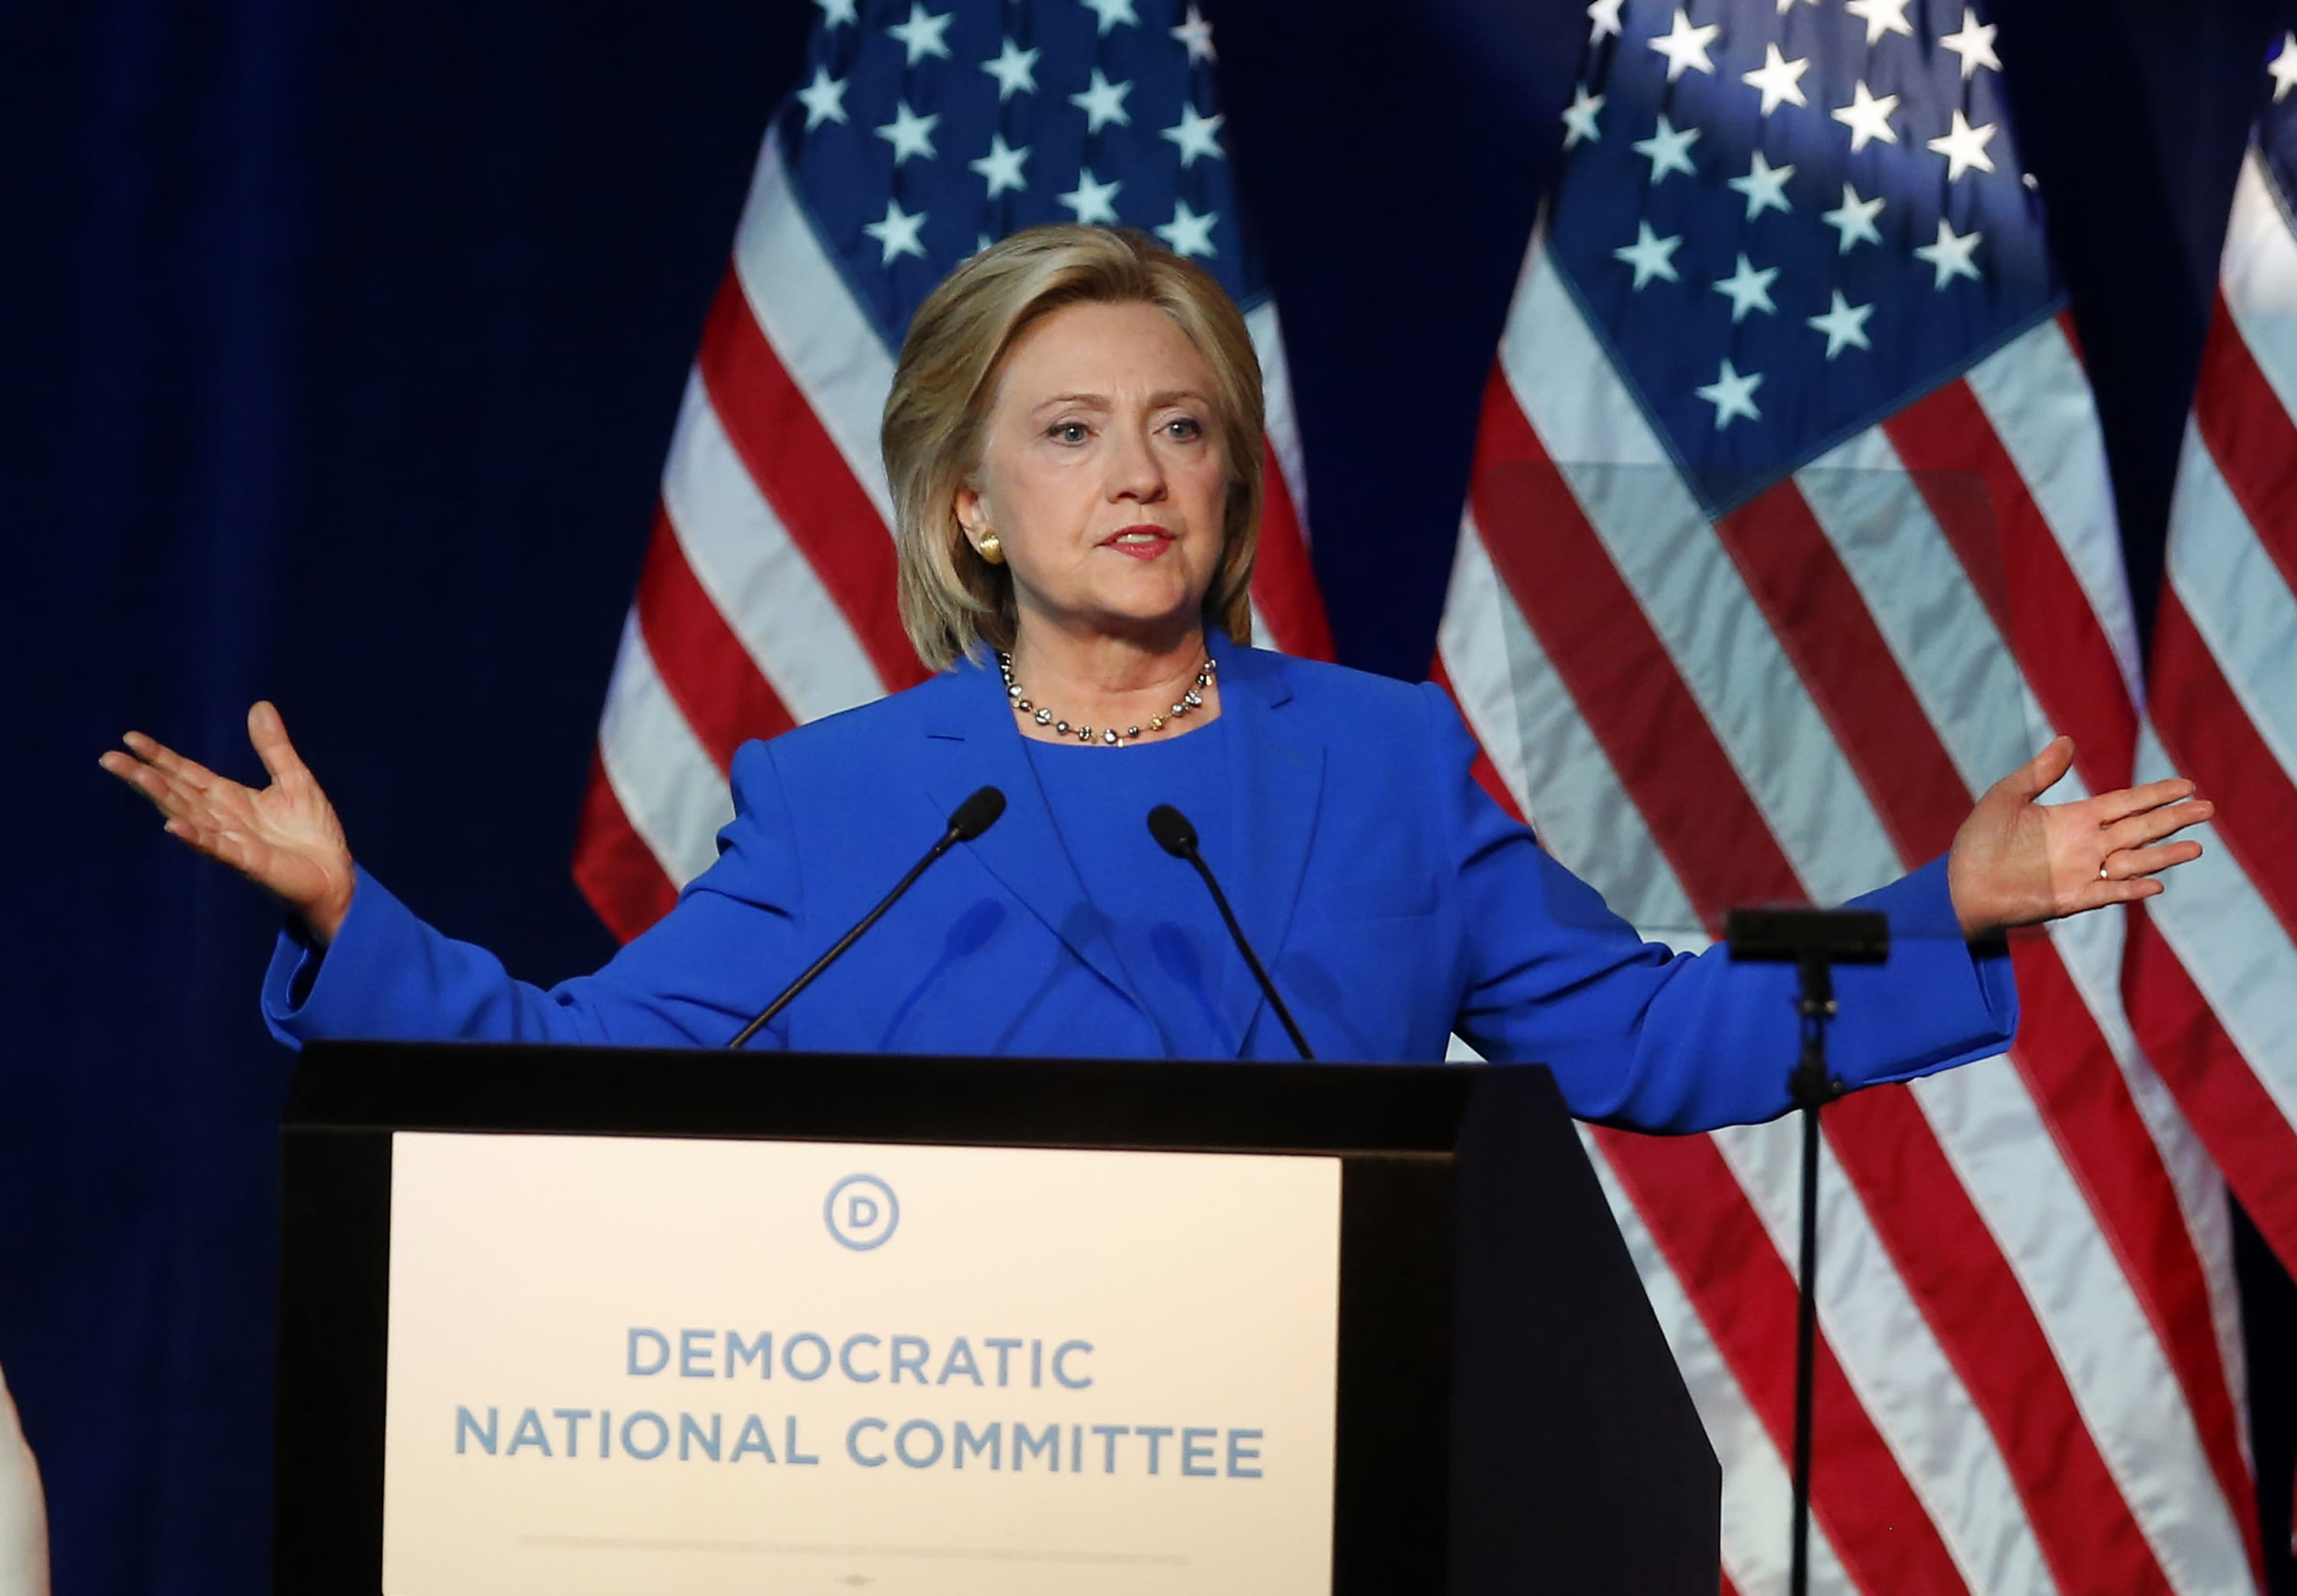 Clinton, aides stressed protecting State Dept info in email